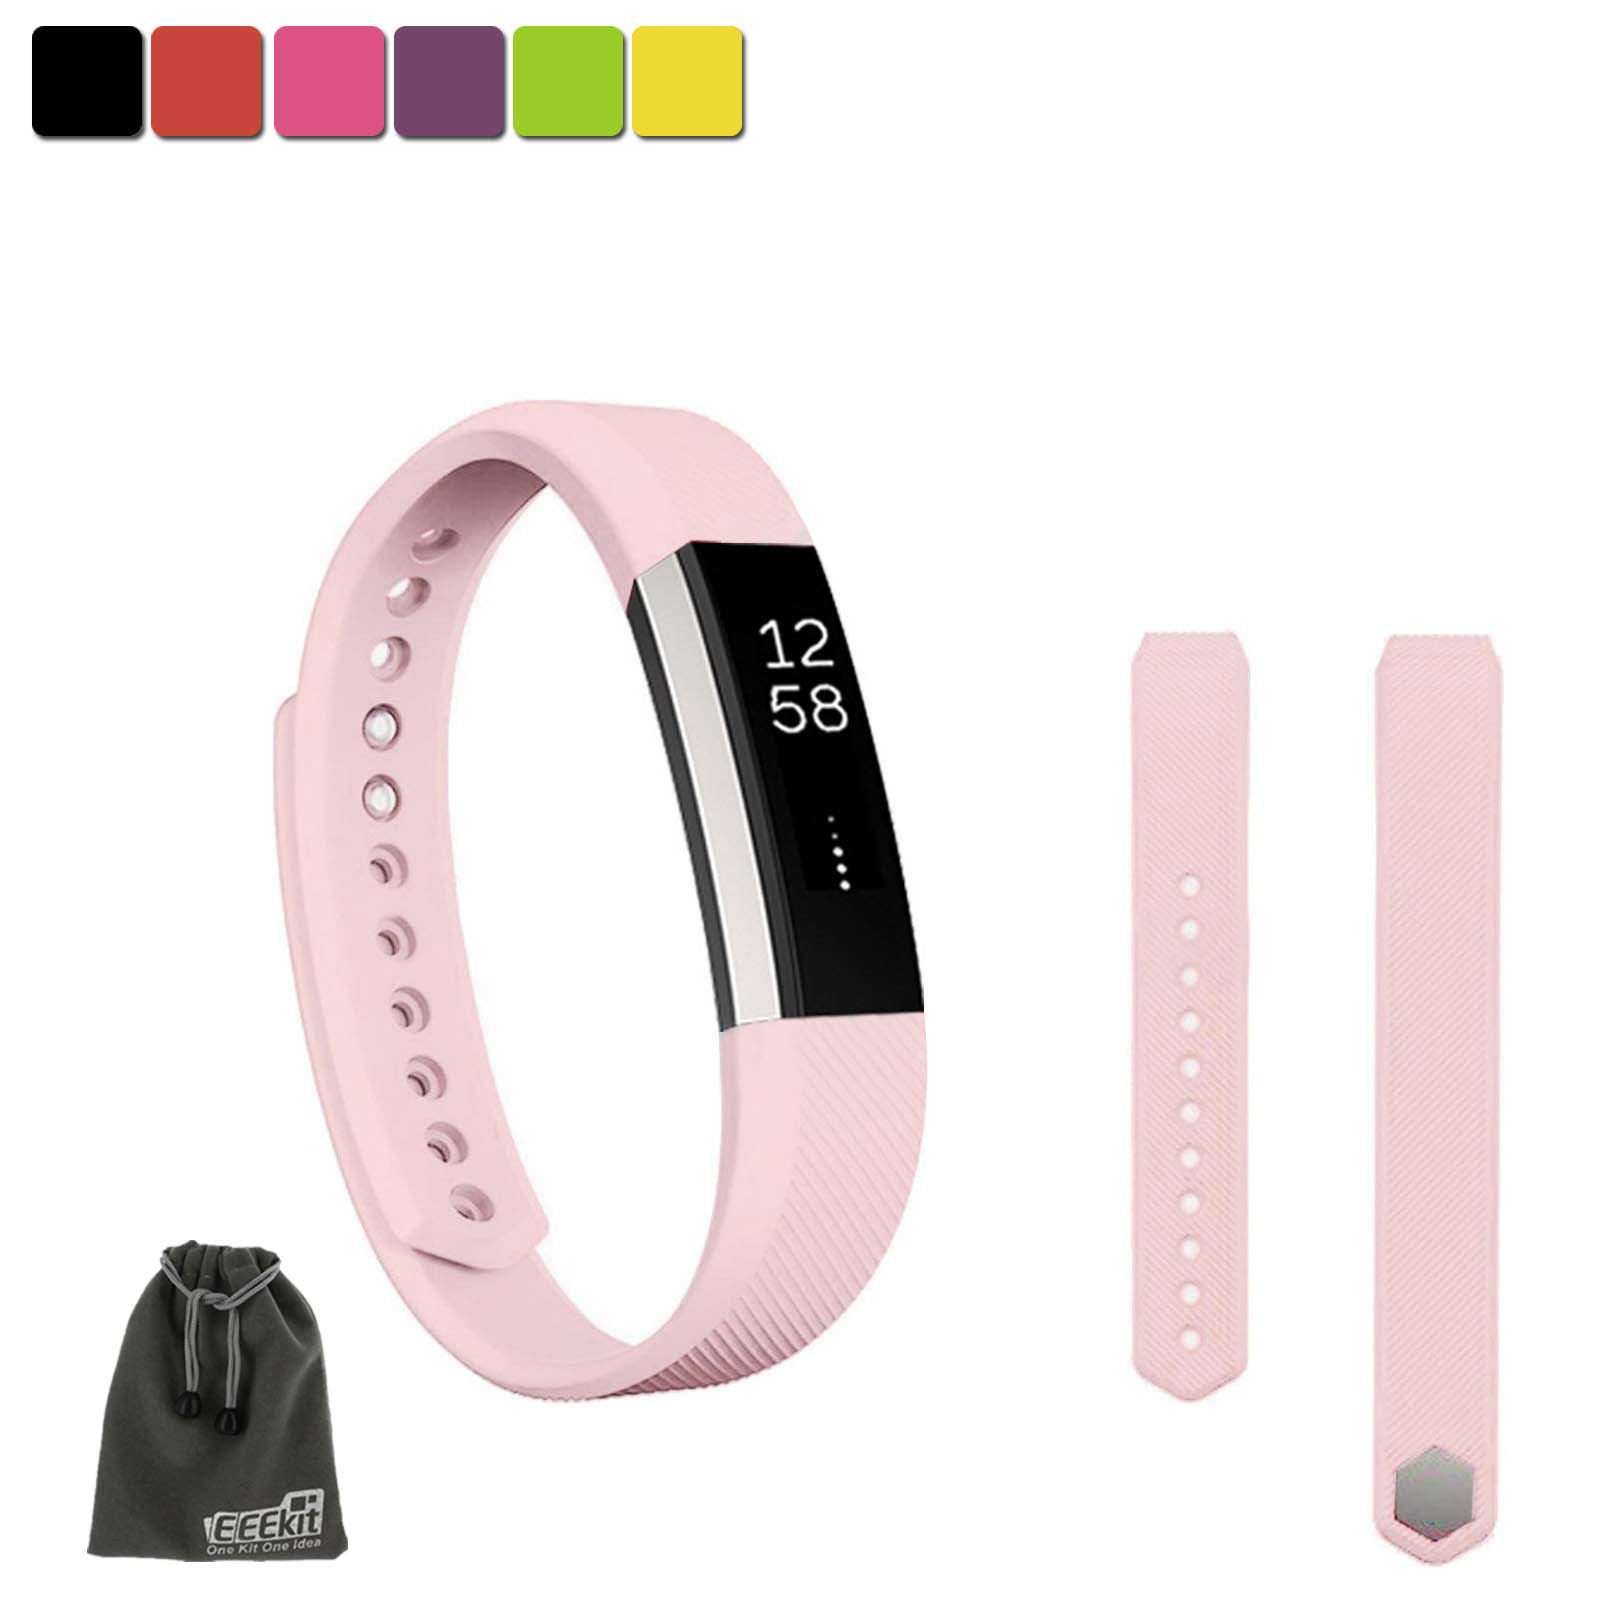 EEEKit SMALL S Size Silicone Replacement Sports Watch Wrist Band Strap w/ Clasp for Fitbit ...